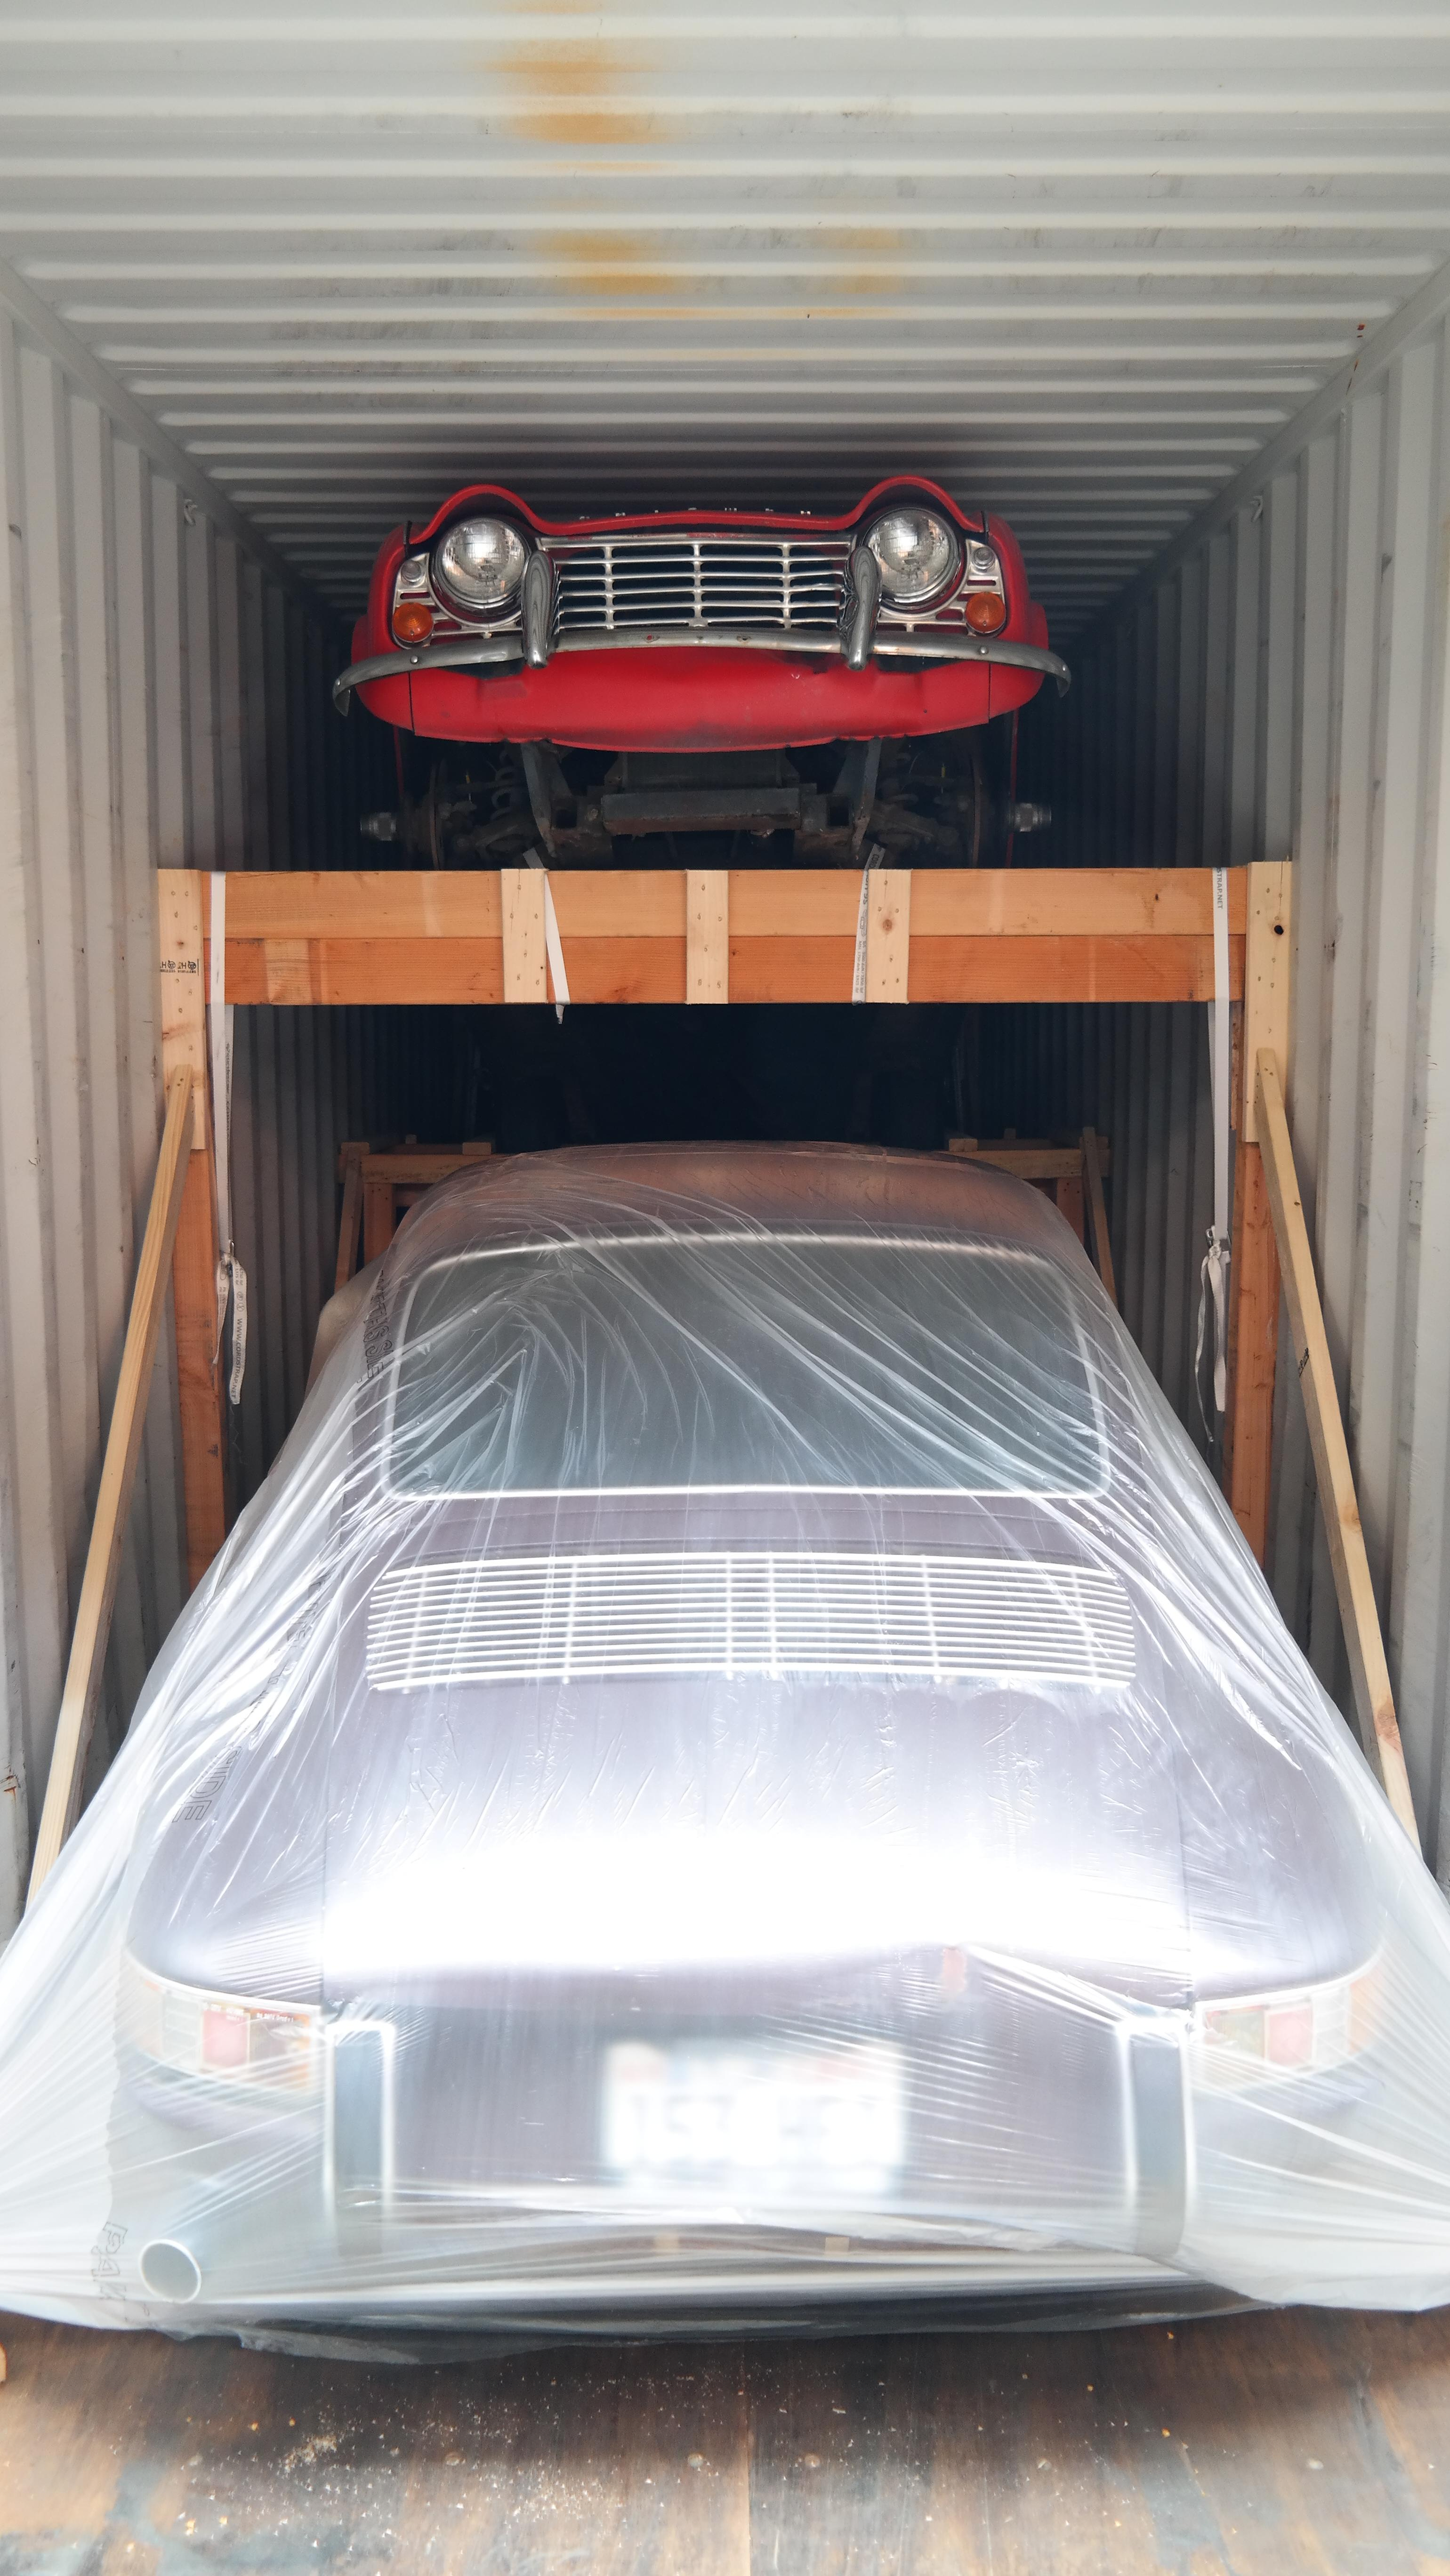 Container car shipping to Saudi Arabia from USA